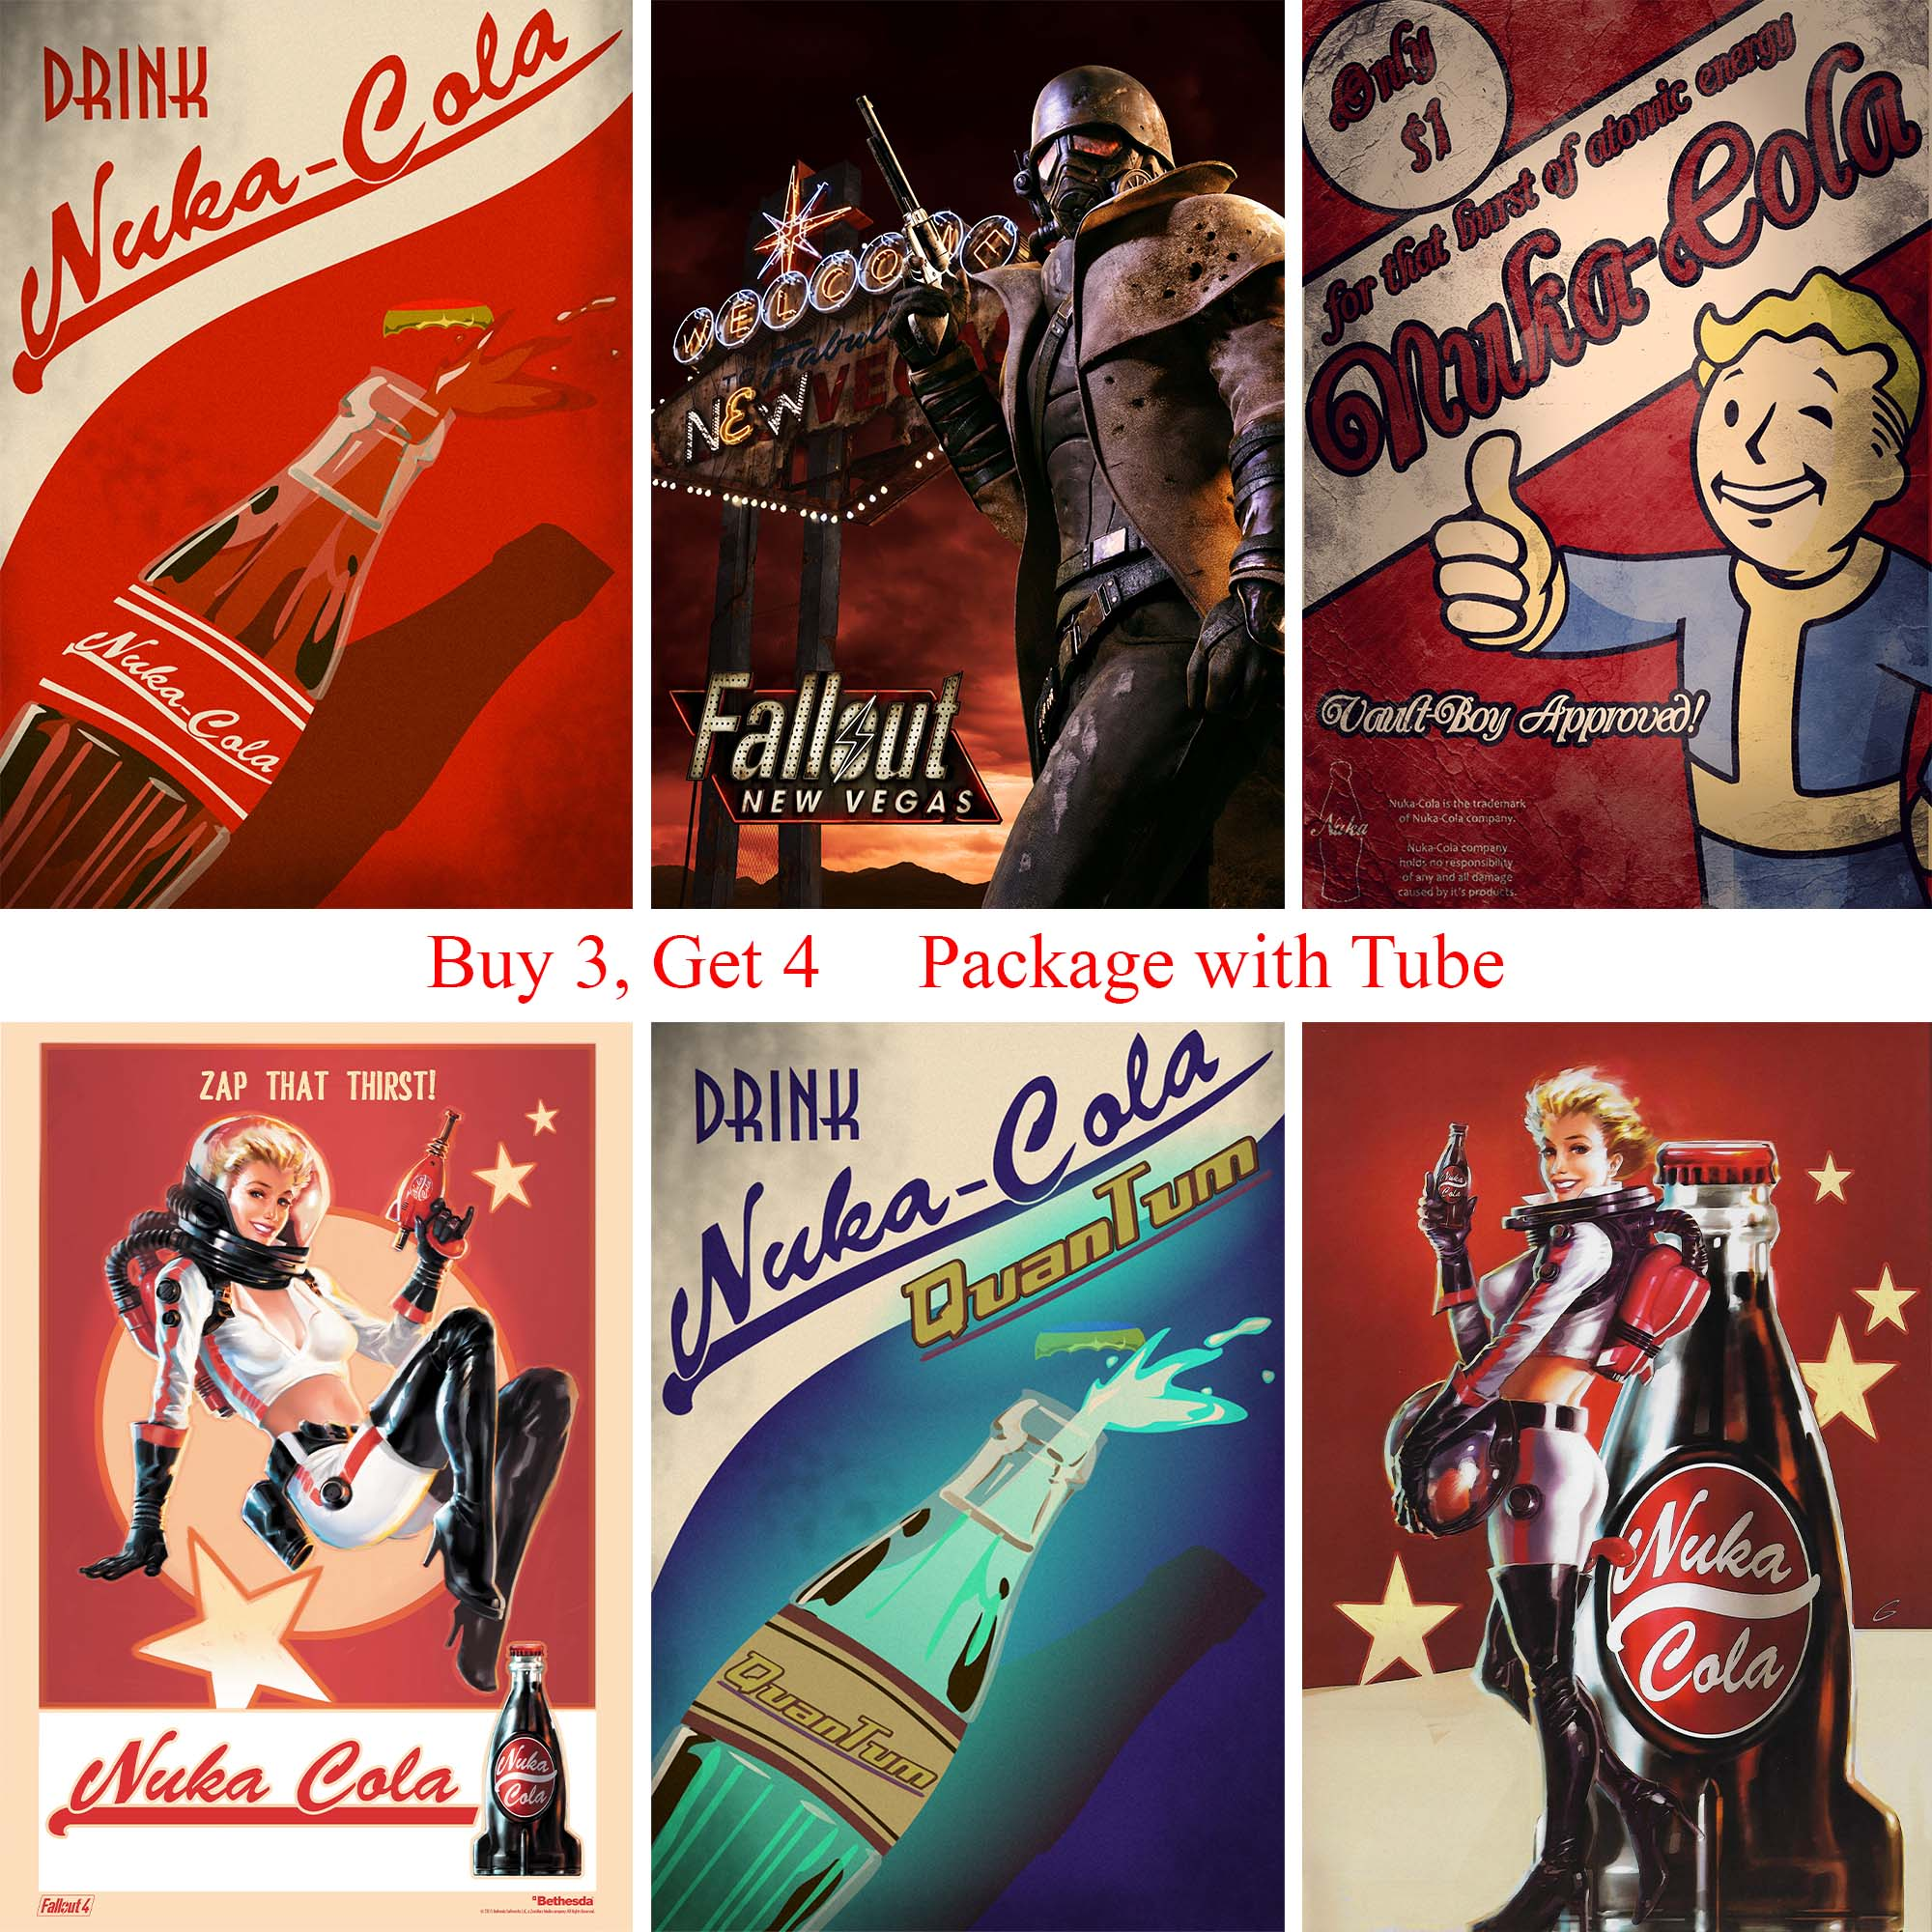 Fallout 4 Game Posters High Quality Wall Stickers White Coated Paper Prints Home Decoration Home Art Brand image